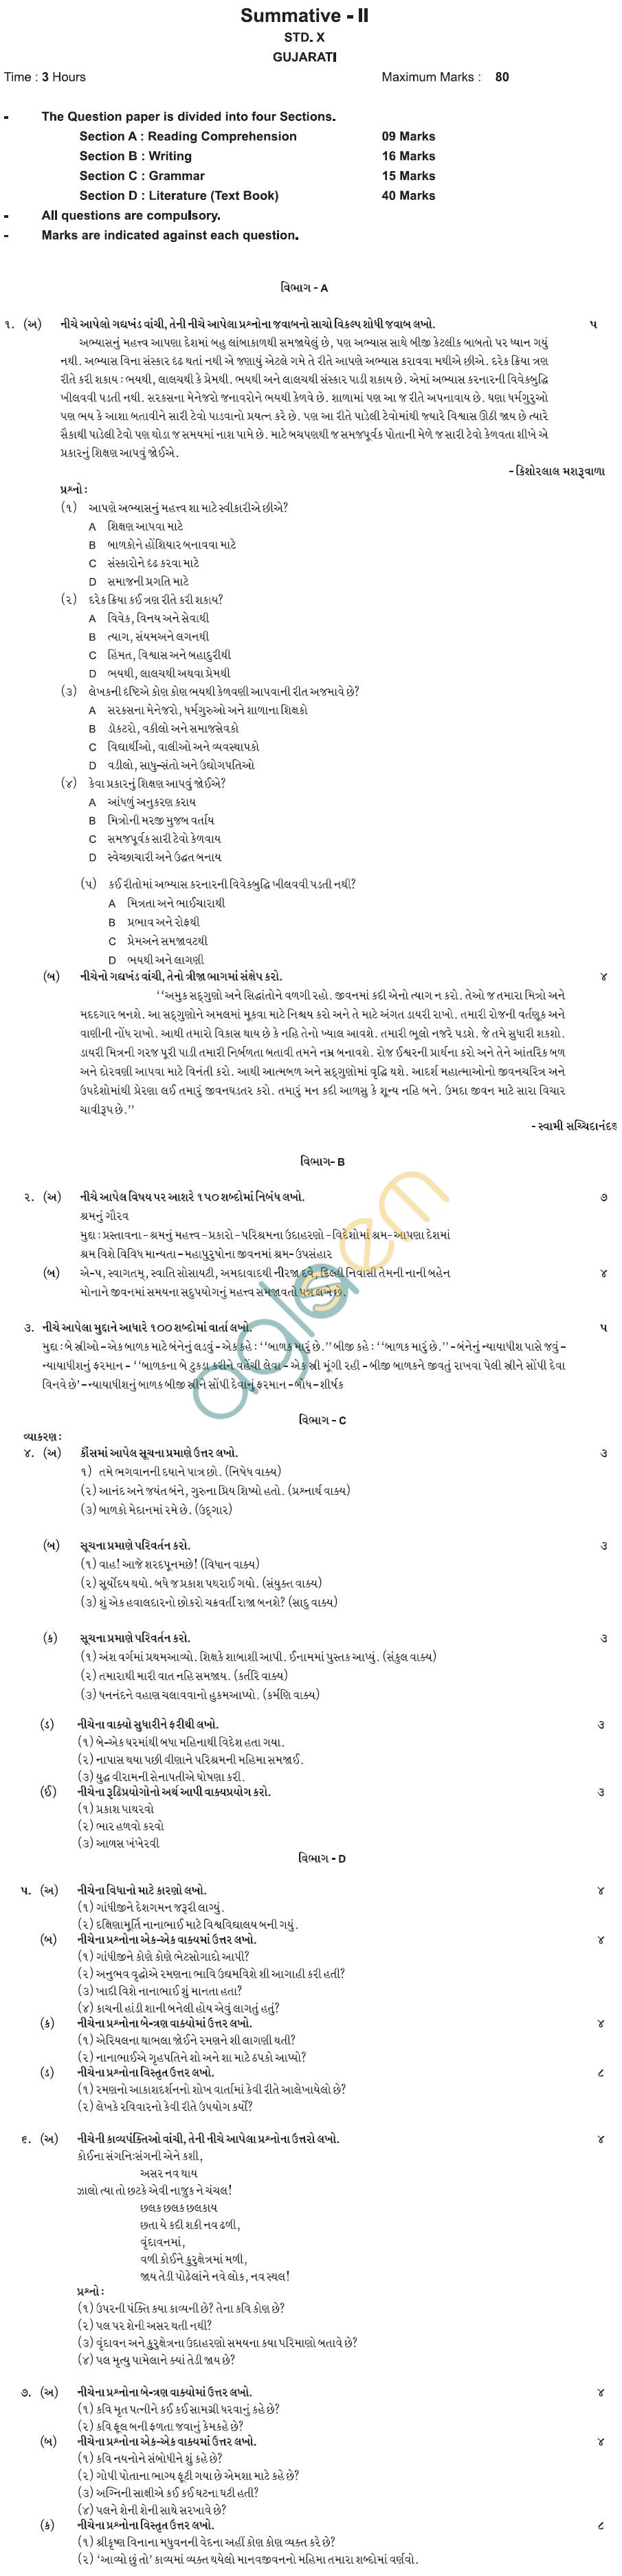 CBSE Class X Sample Papers 2013 (Second Term) Gujarati